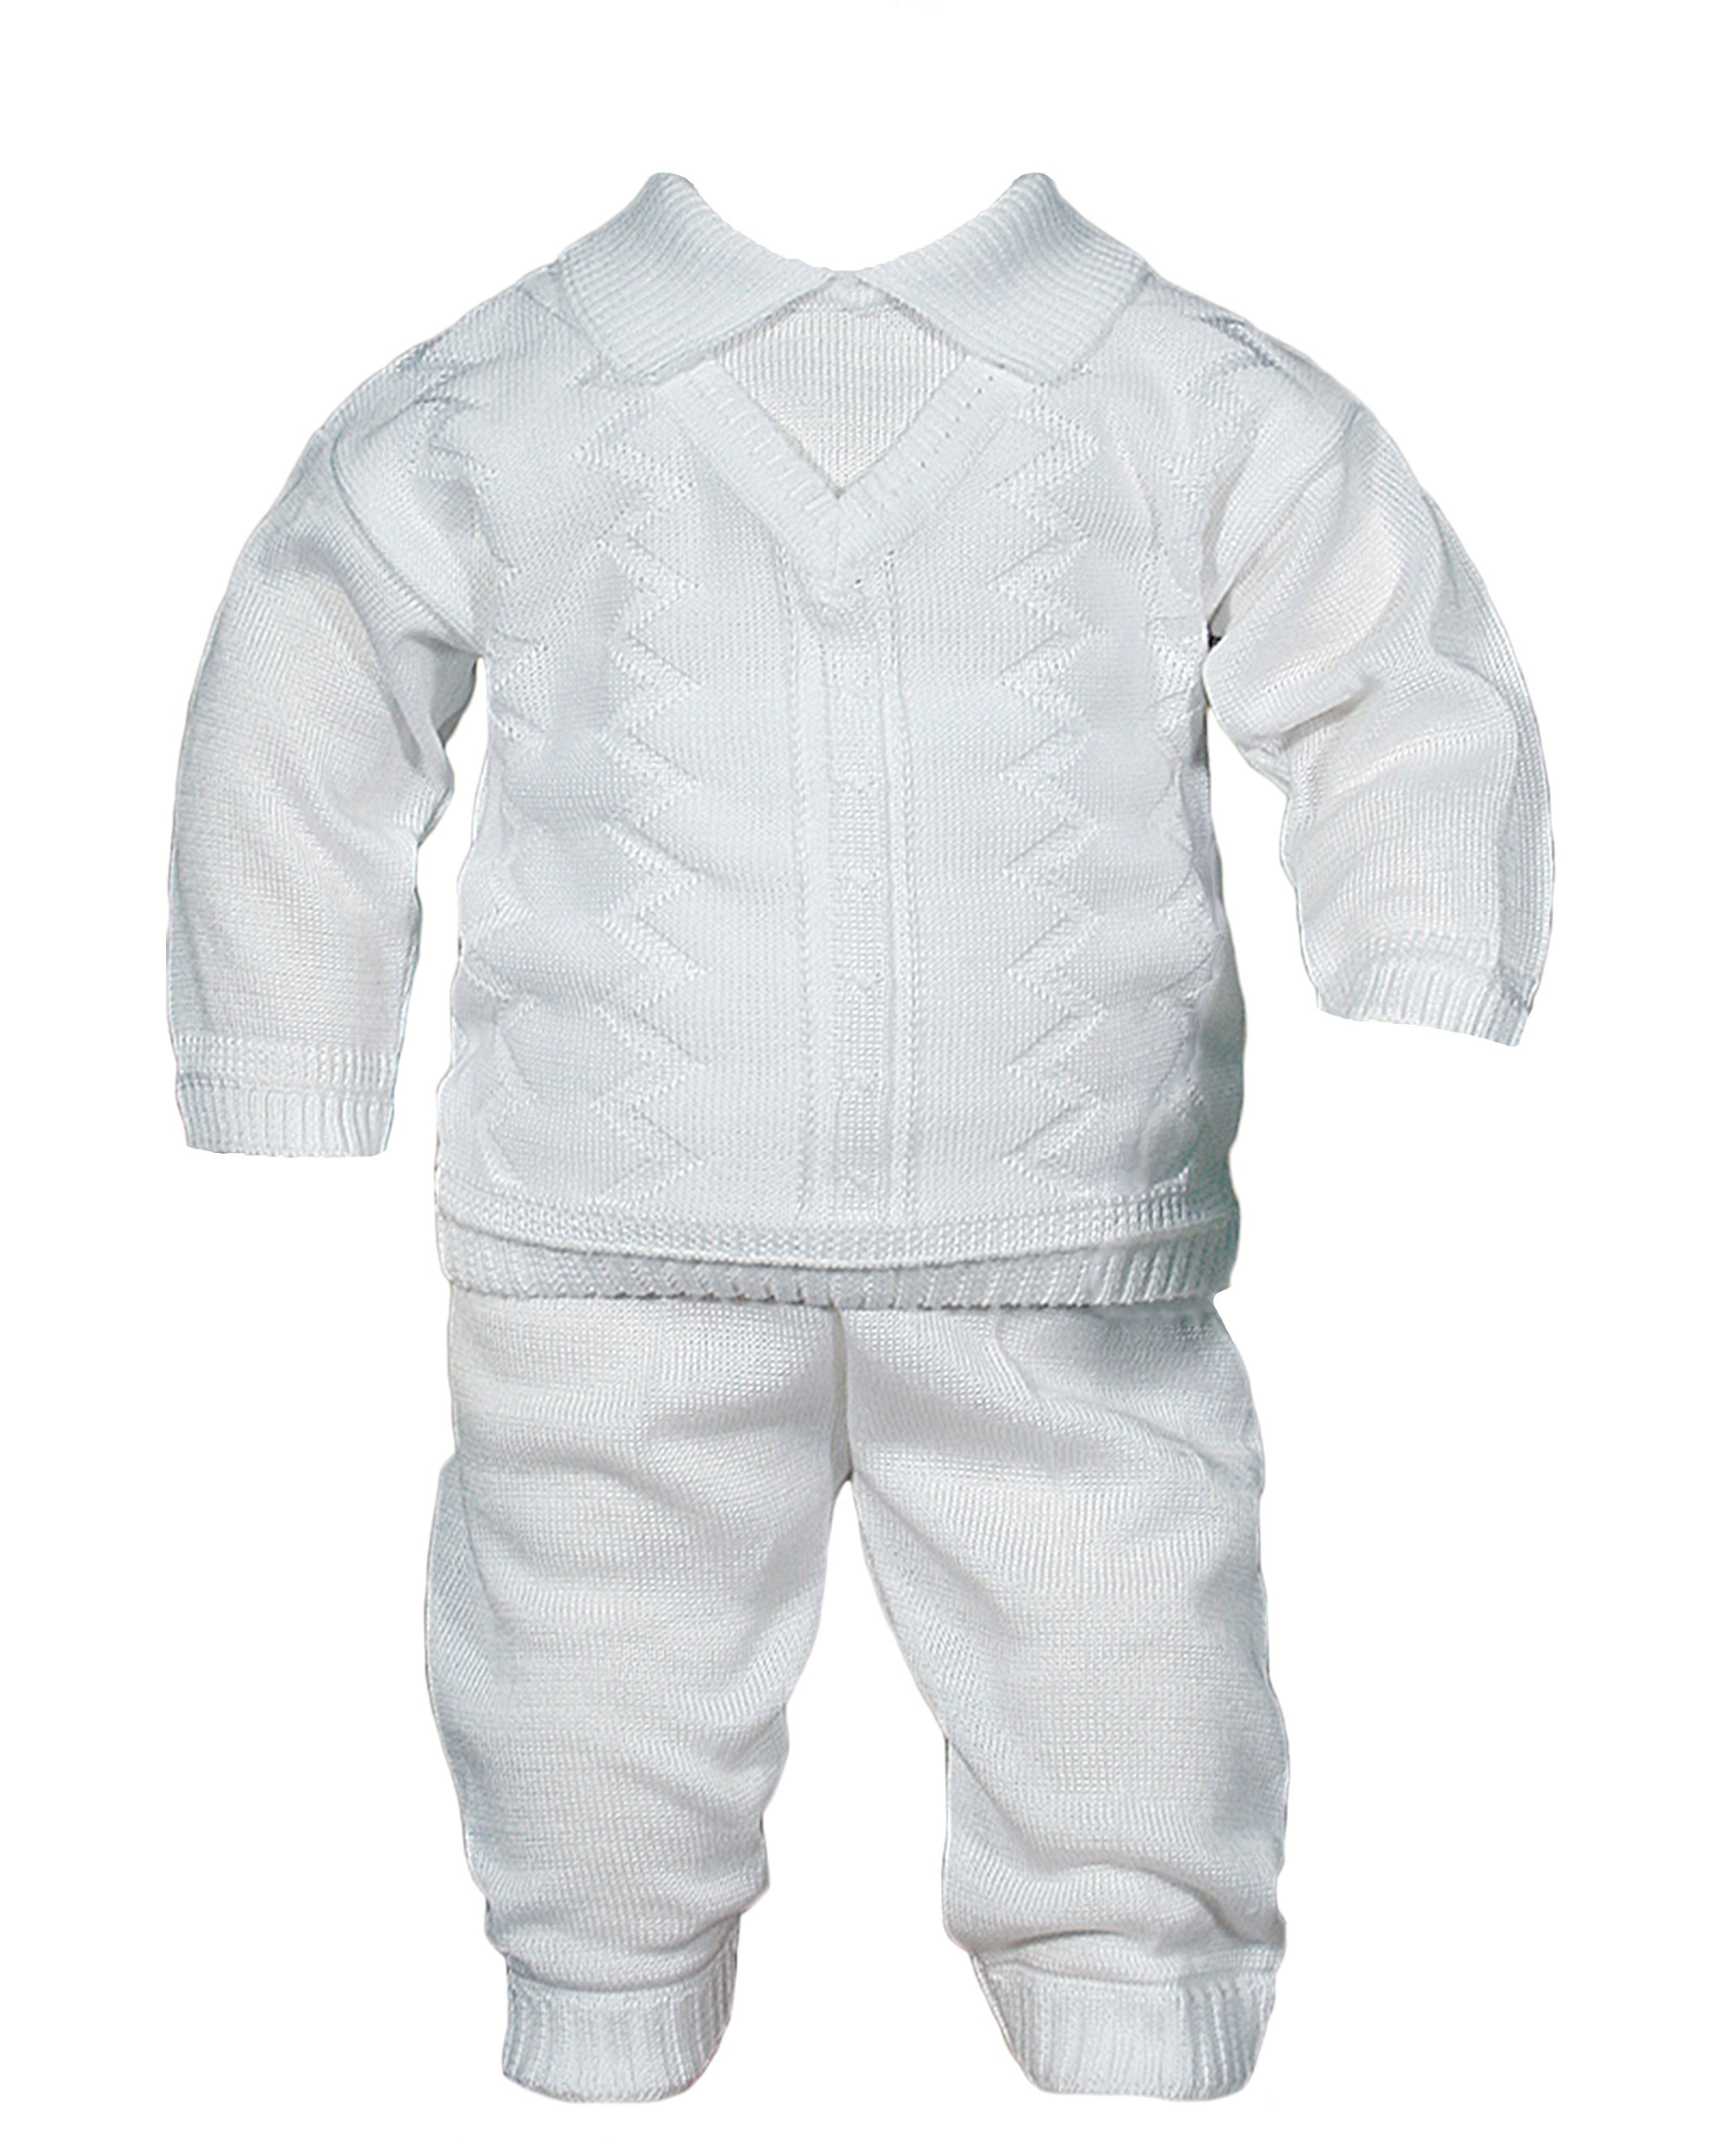 Boys 100% Cotton Knit Two Piece White Christening Baptism Outfit, 24